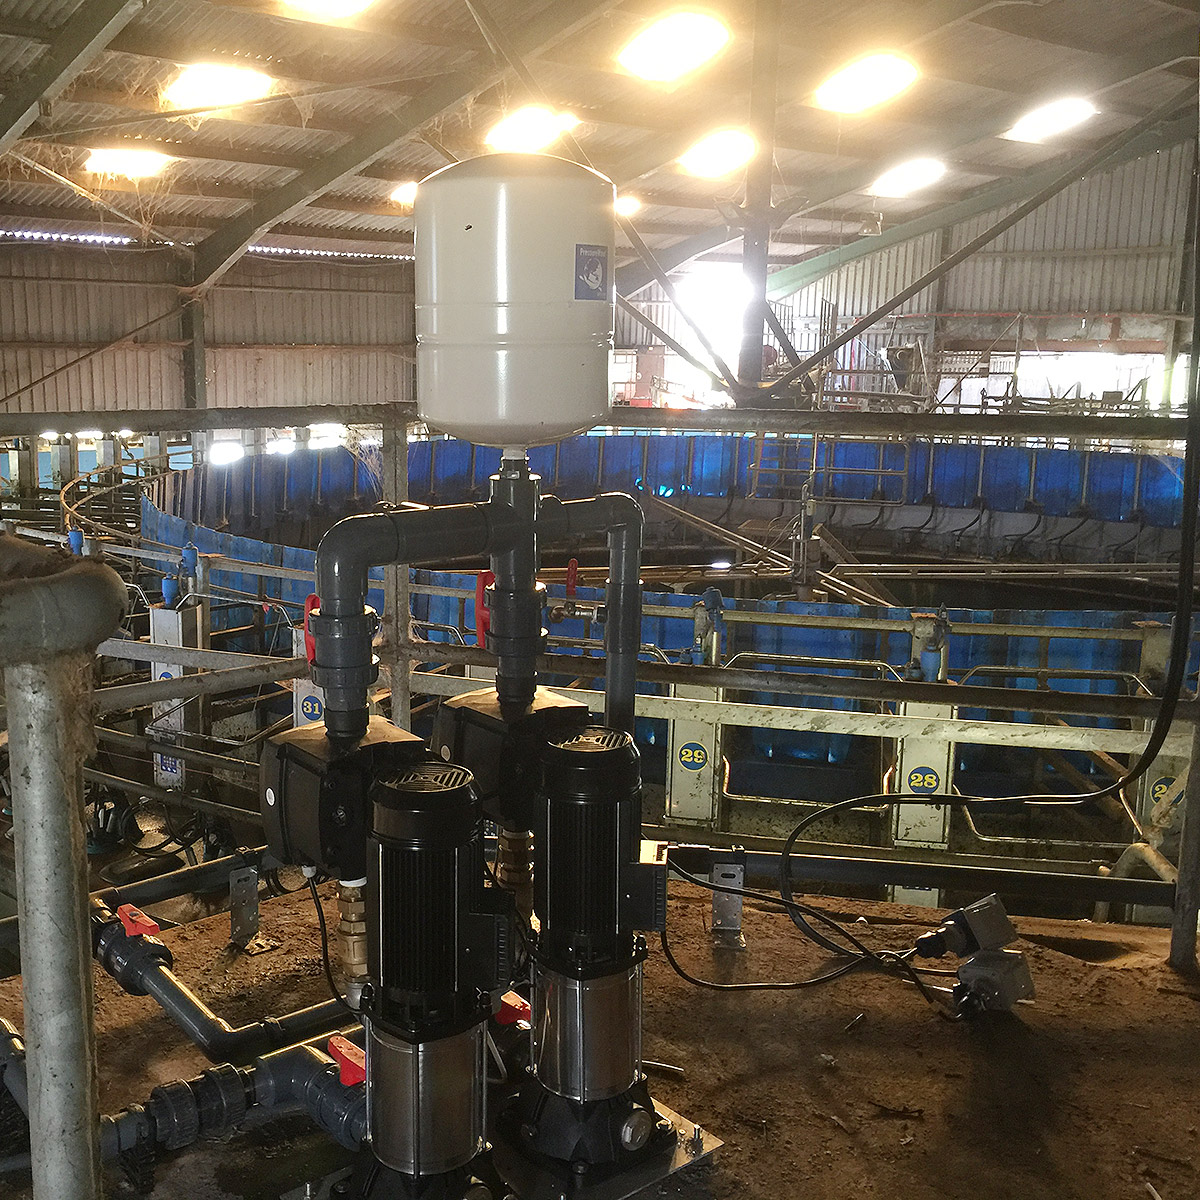 Booster pumps in milking parlour